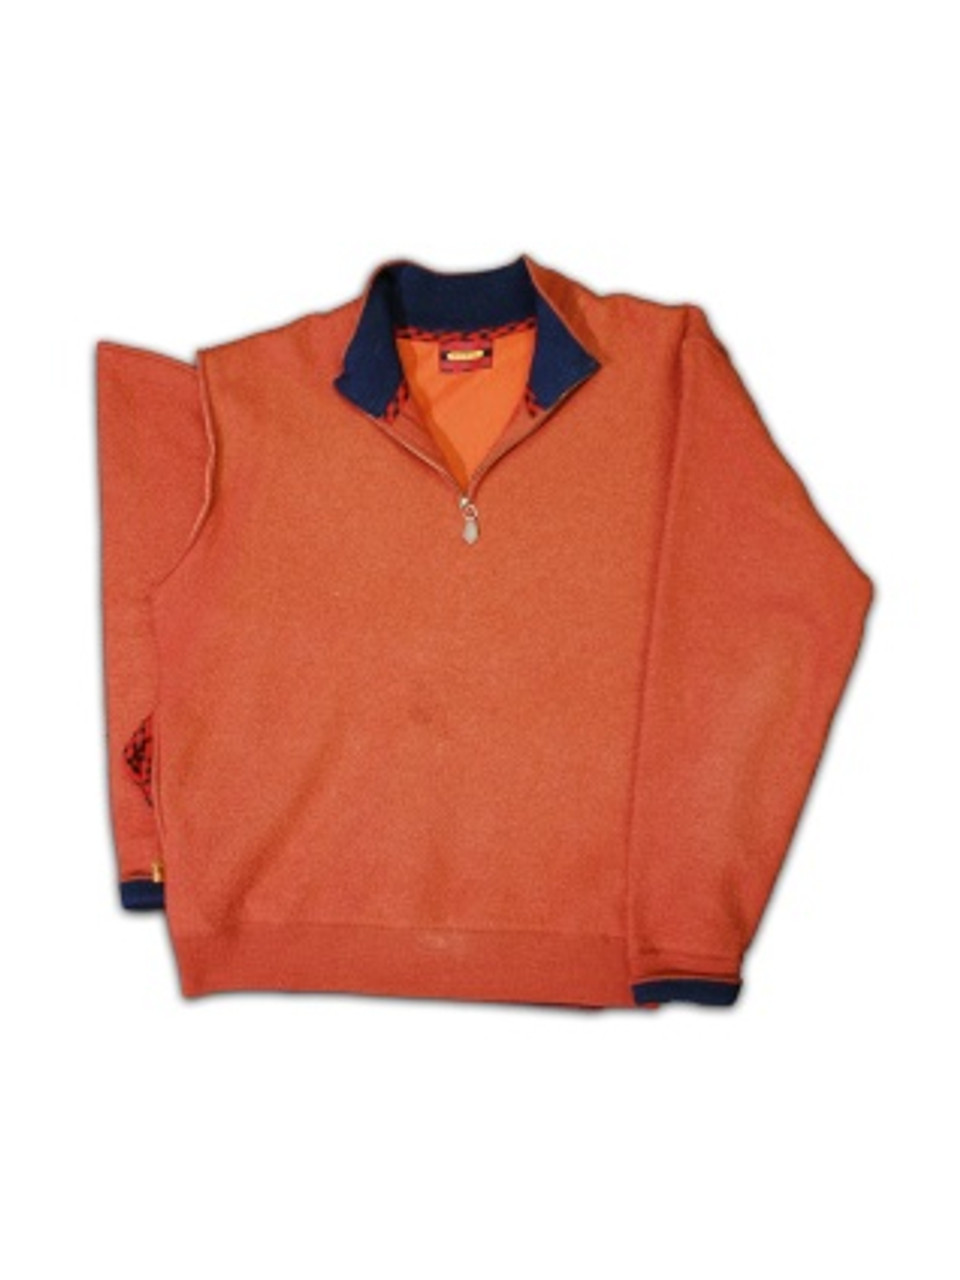 AvieMoor Sweater- Rust - 30% OFF